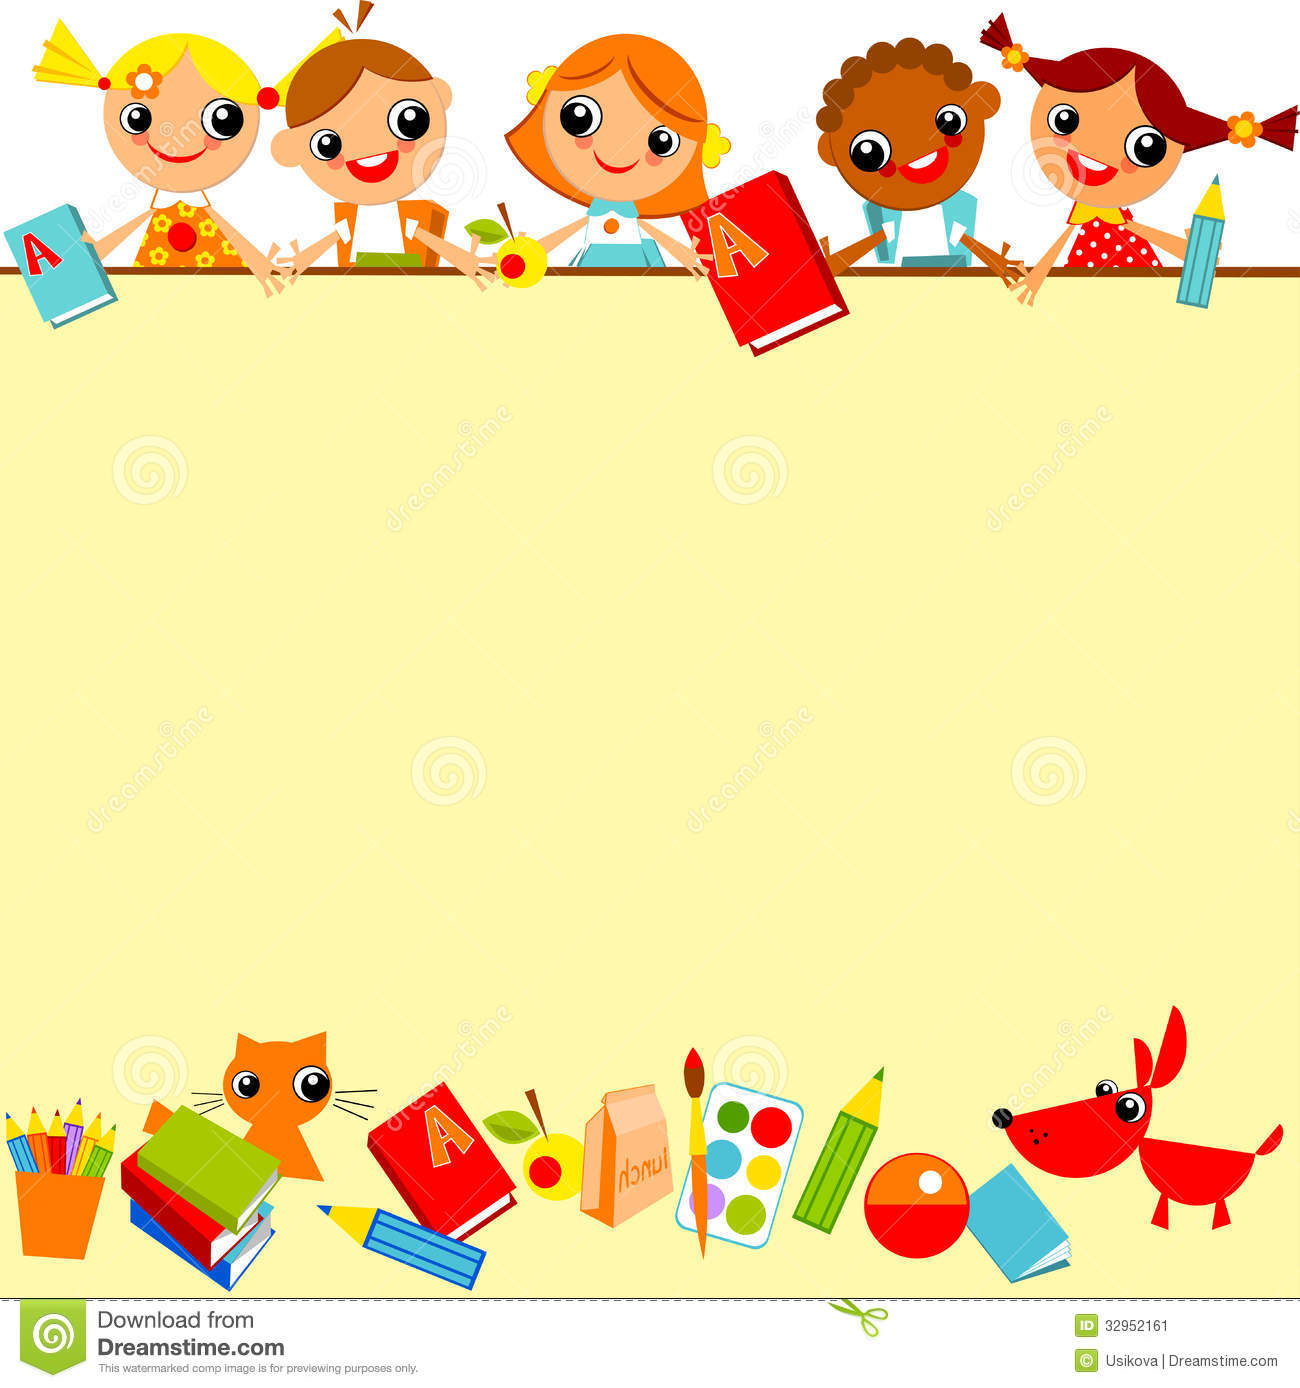 Kids Wallpaper: Children Background Images